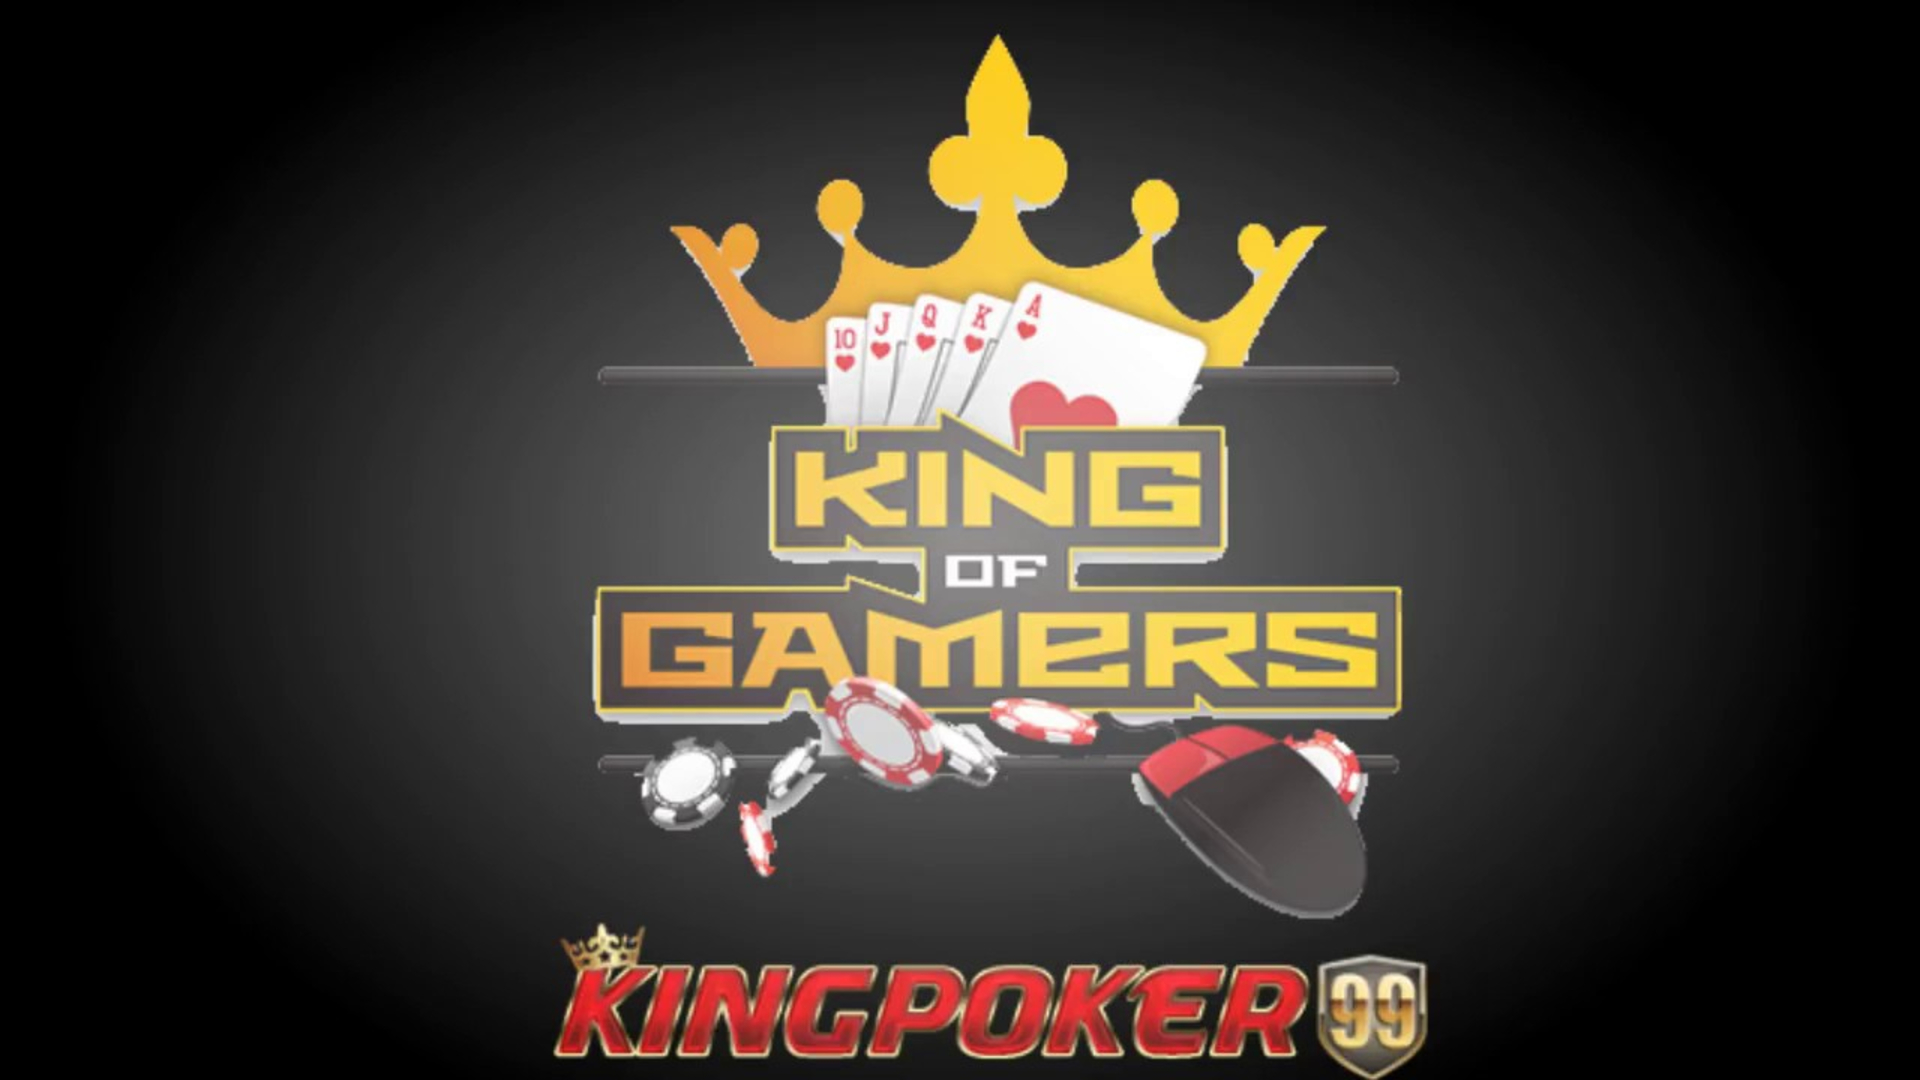 Login Kingpoker Make Playing Less Complicated and More Fun image